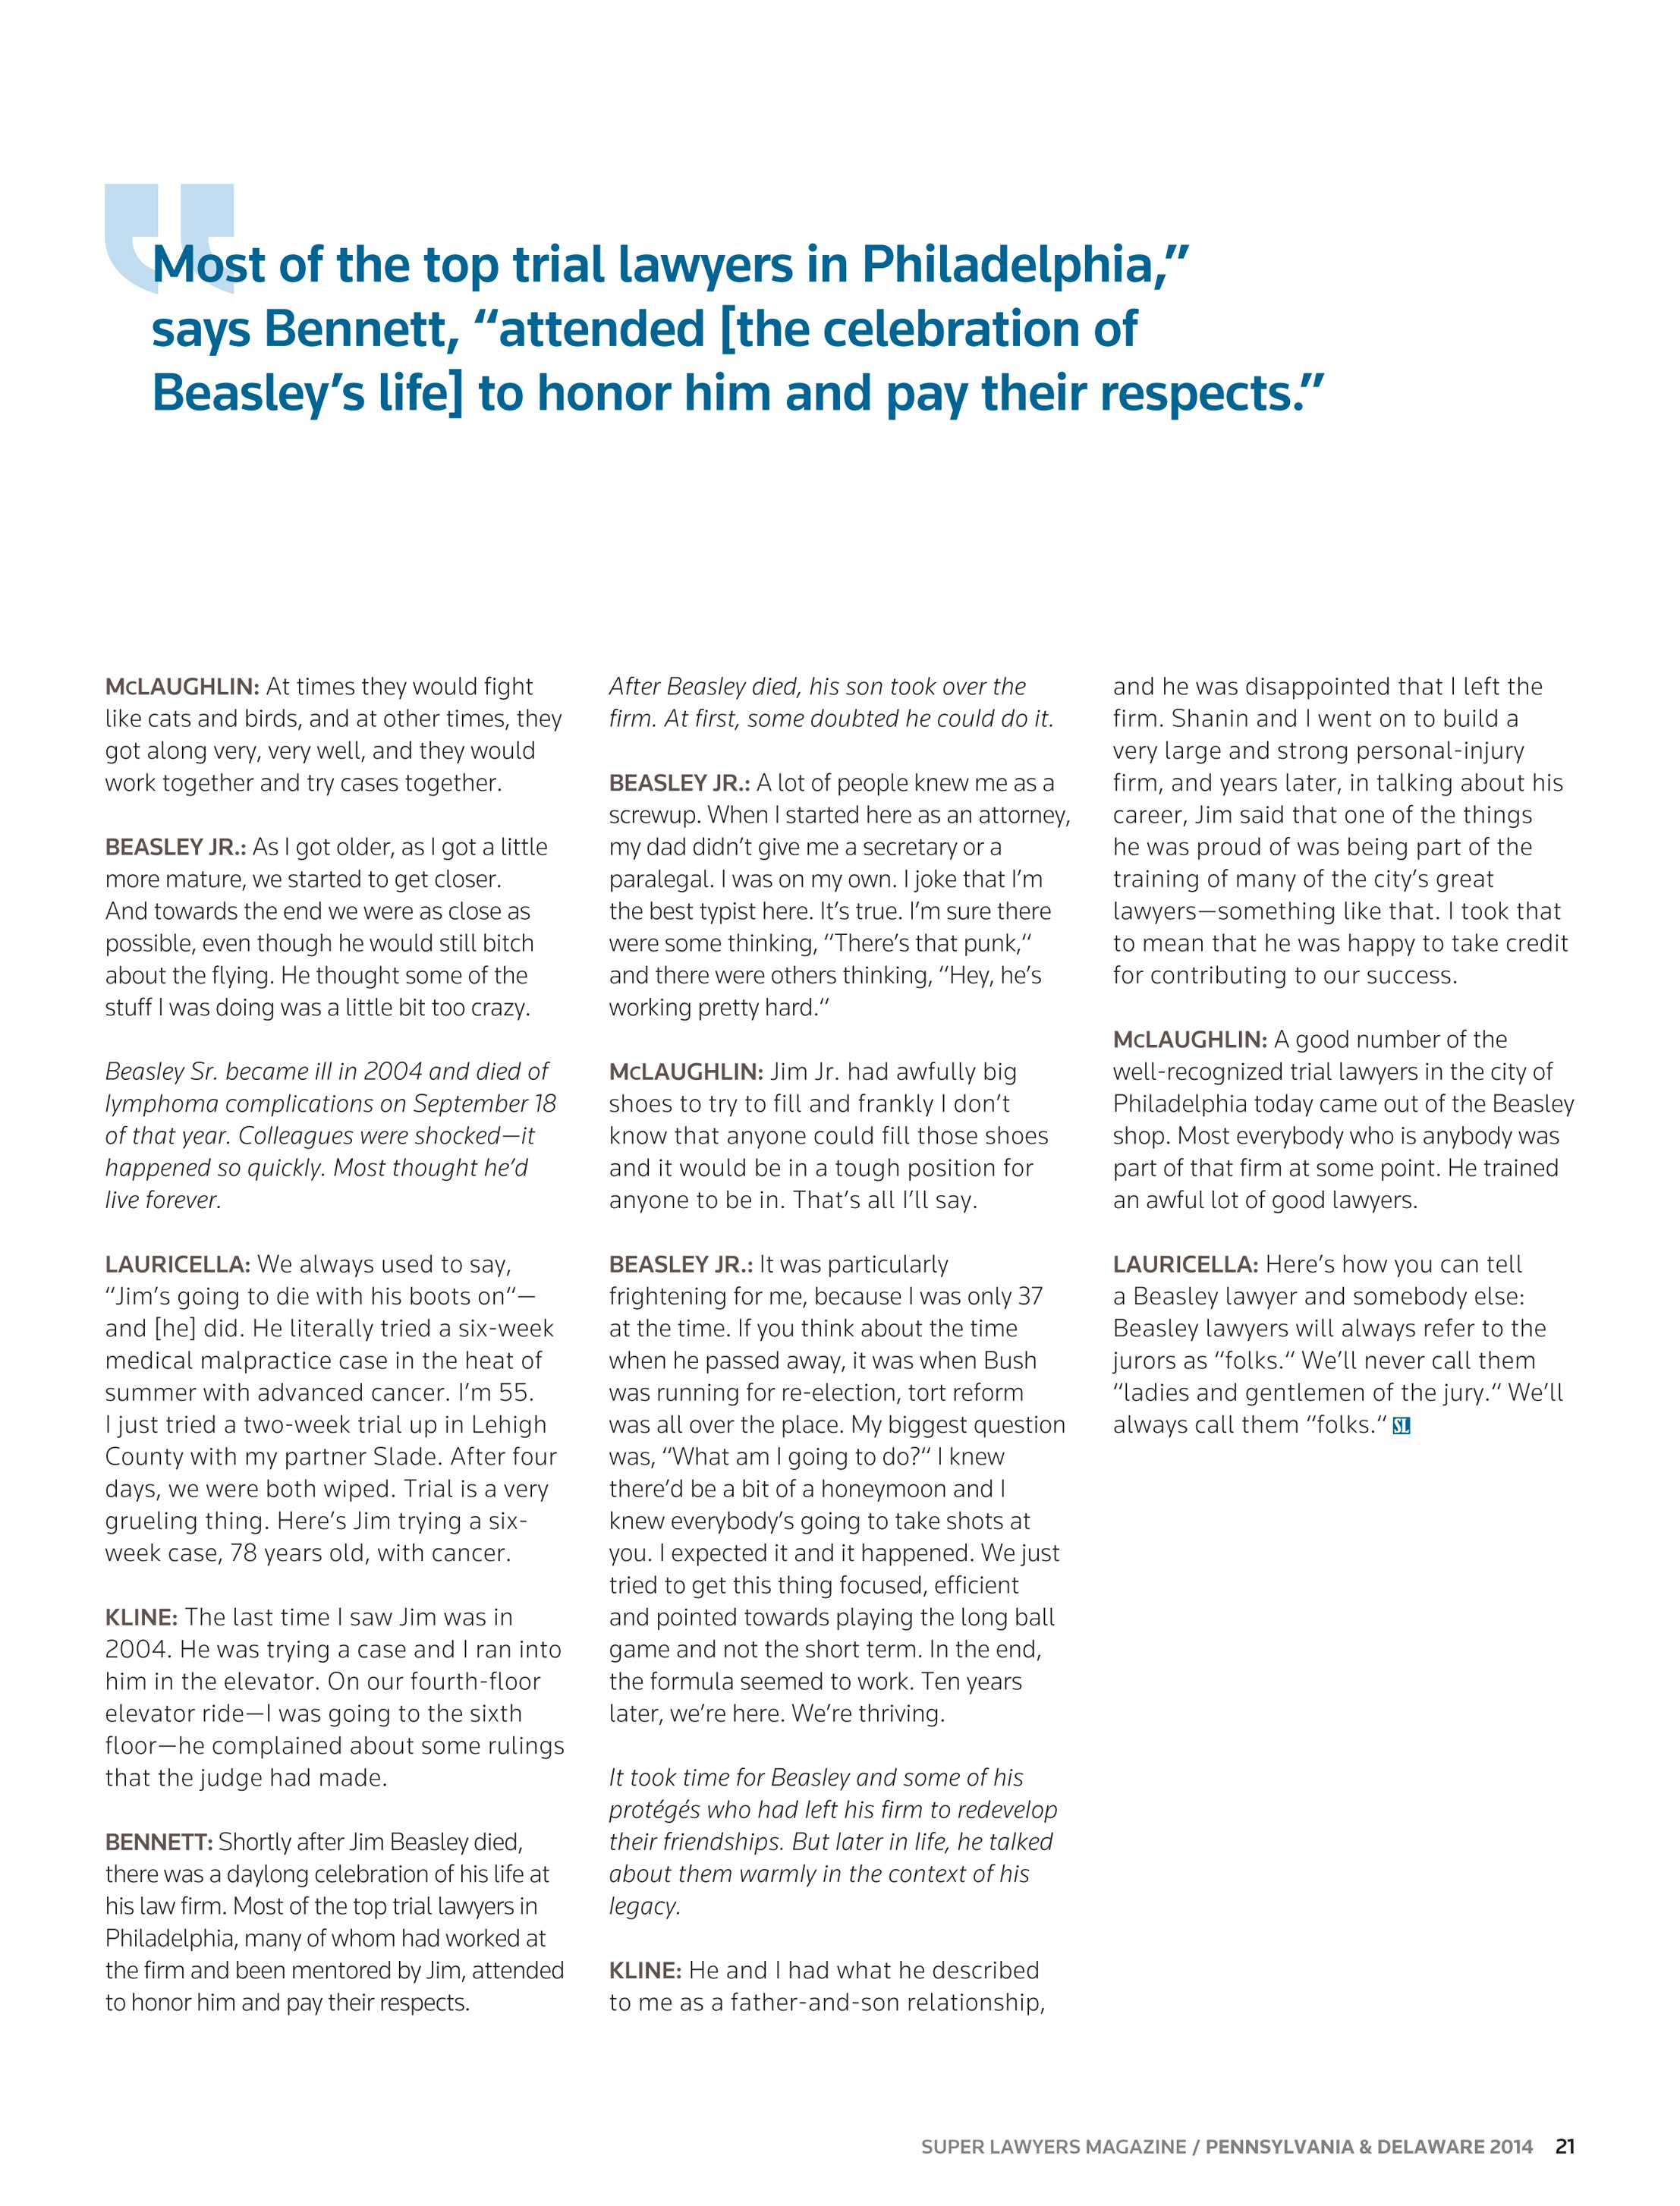 Super Lawyers - Pennsylvania and Delaware 2014 - page 21